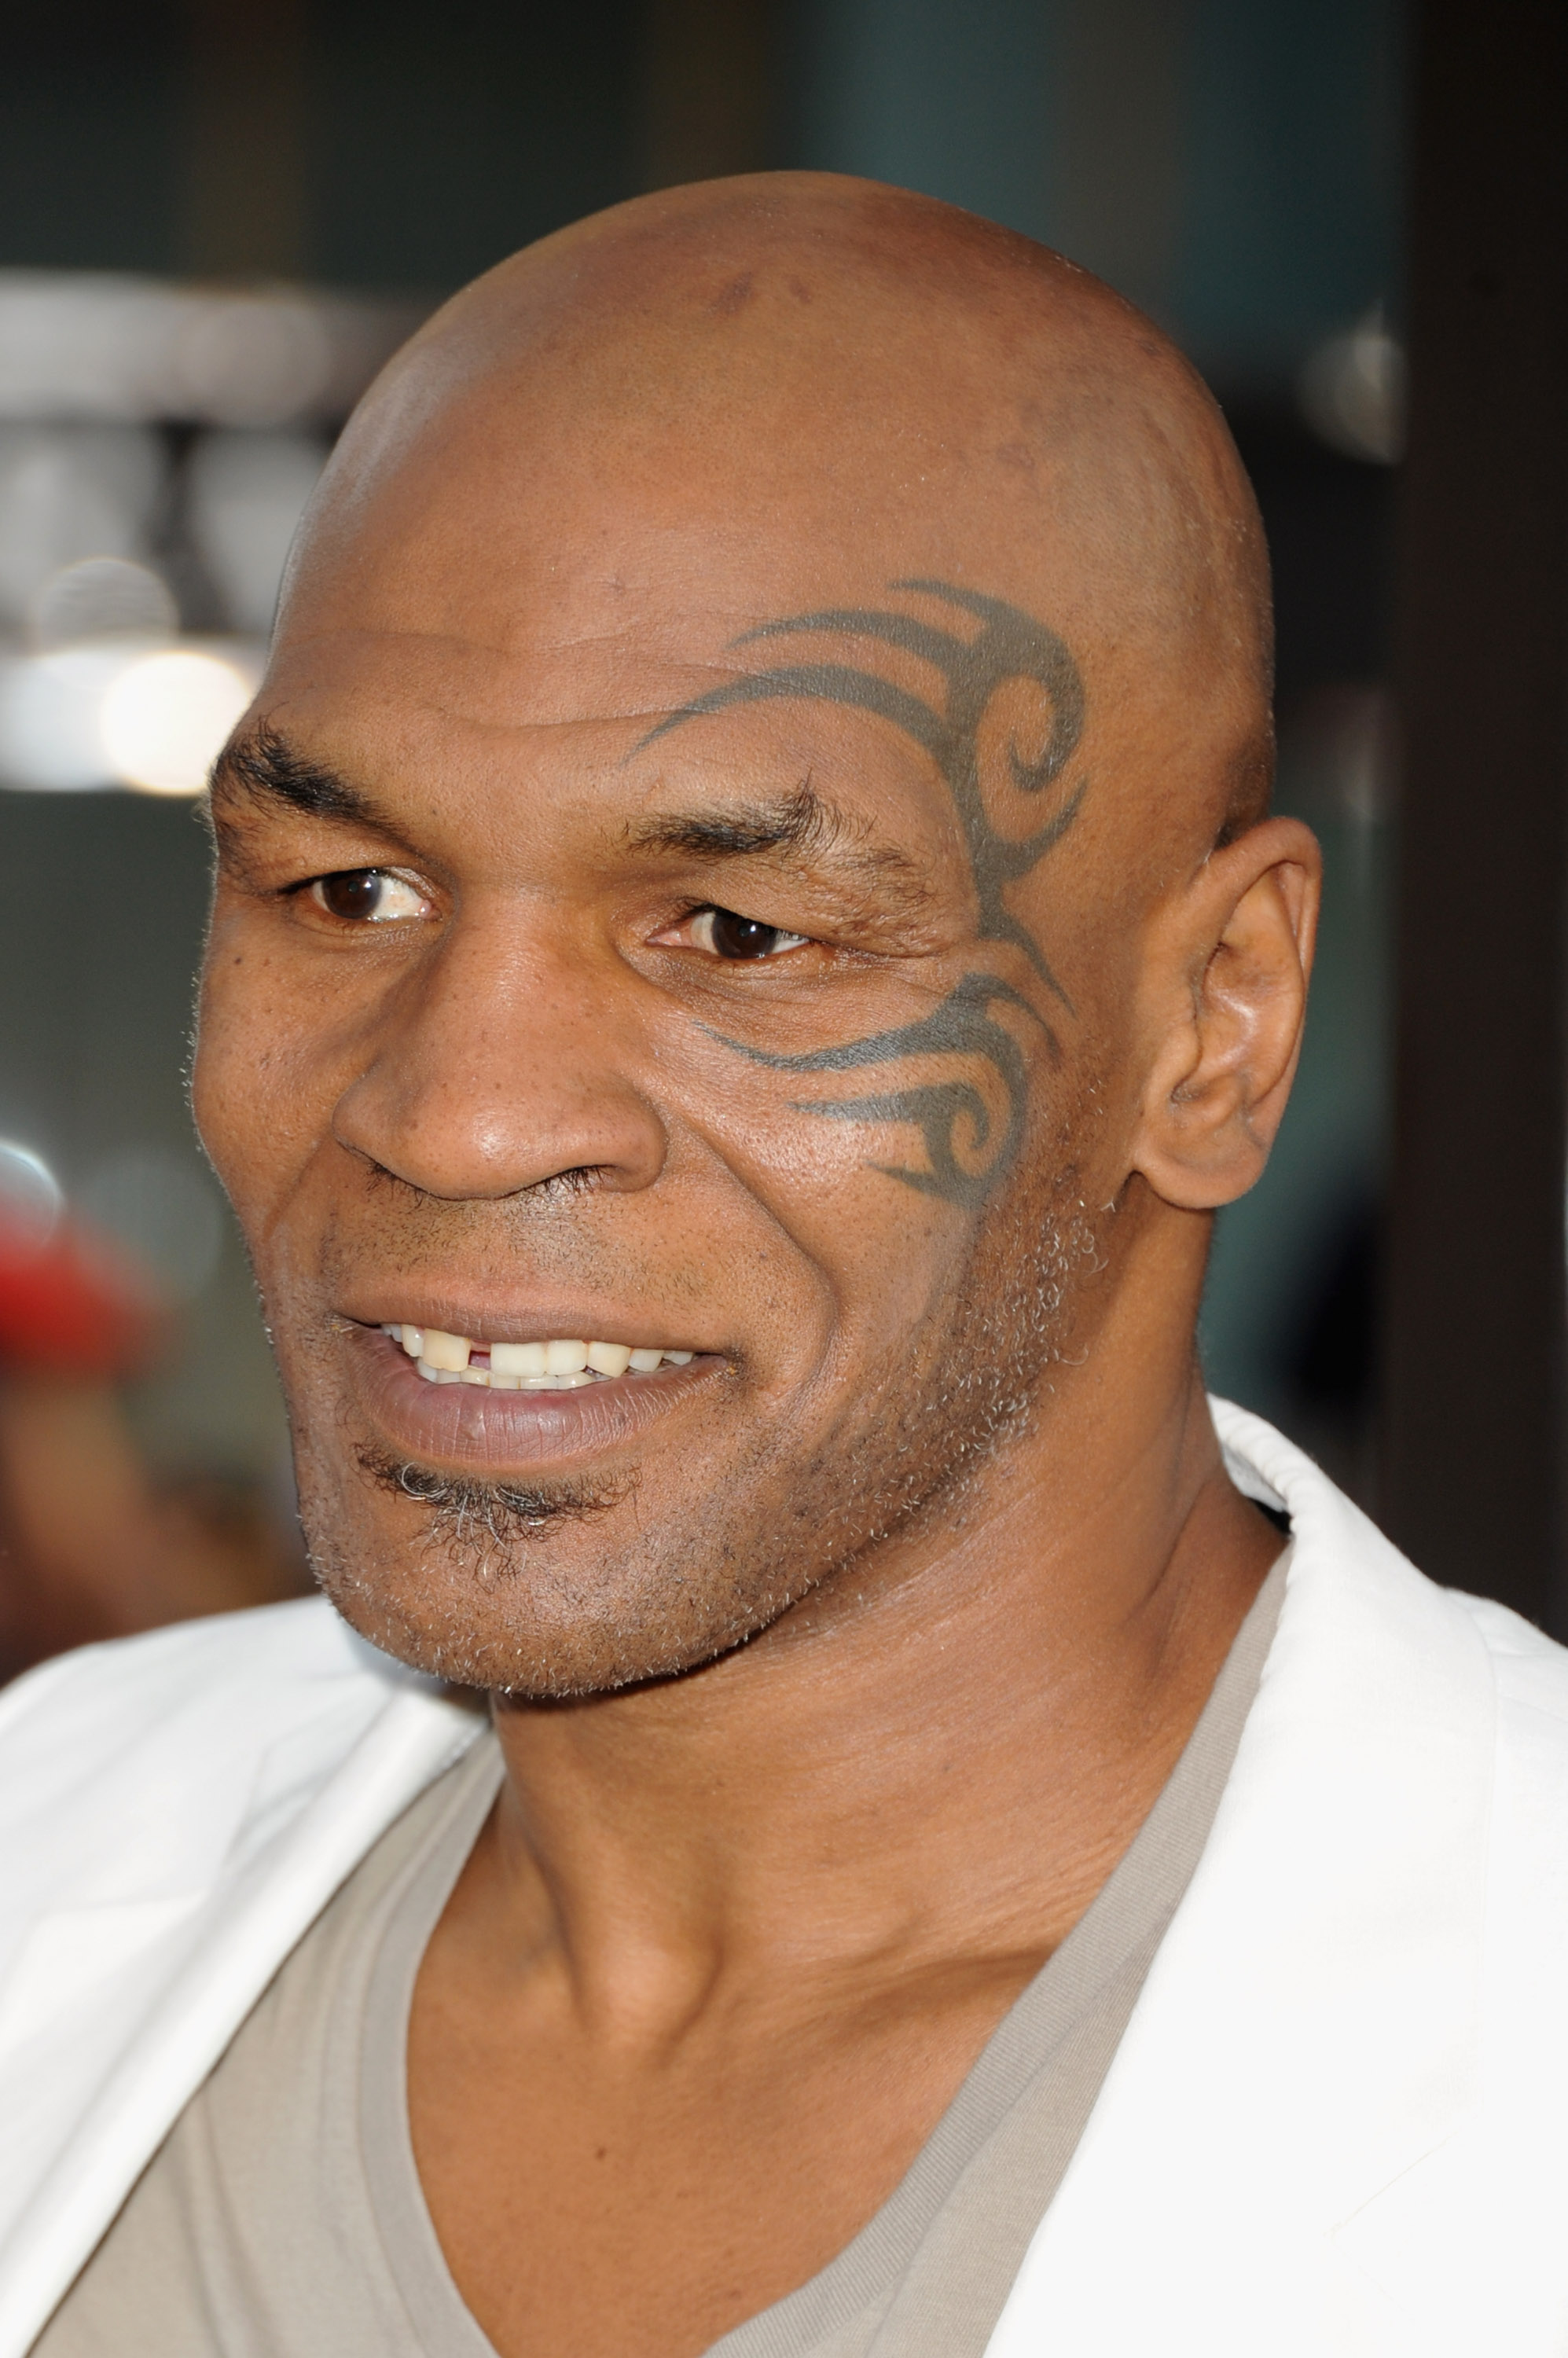 mike tyson knockoutsmike tyson 2016, mike tyson биография, mike tyson foto, mike tyson video, mike tyson википедия, mike tyson boxrec, mike tyson film, mike tyson mysteries, mike tyson 2017, mike tyson height, mike tyson wiki, mike tyson soulja boy, mike tyson quotes, mike tyson boks, mike tyson vs peter mcneeley, mike tyson undisputed truth, mike tyson instagram, mike tyson art, mike tyson ufc, mike tyson knockouts